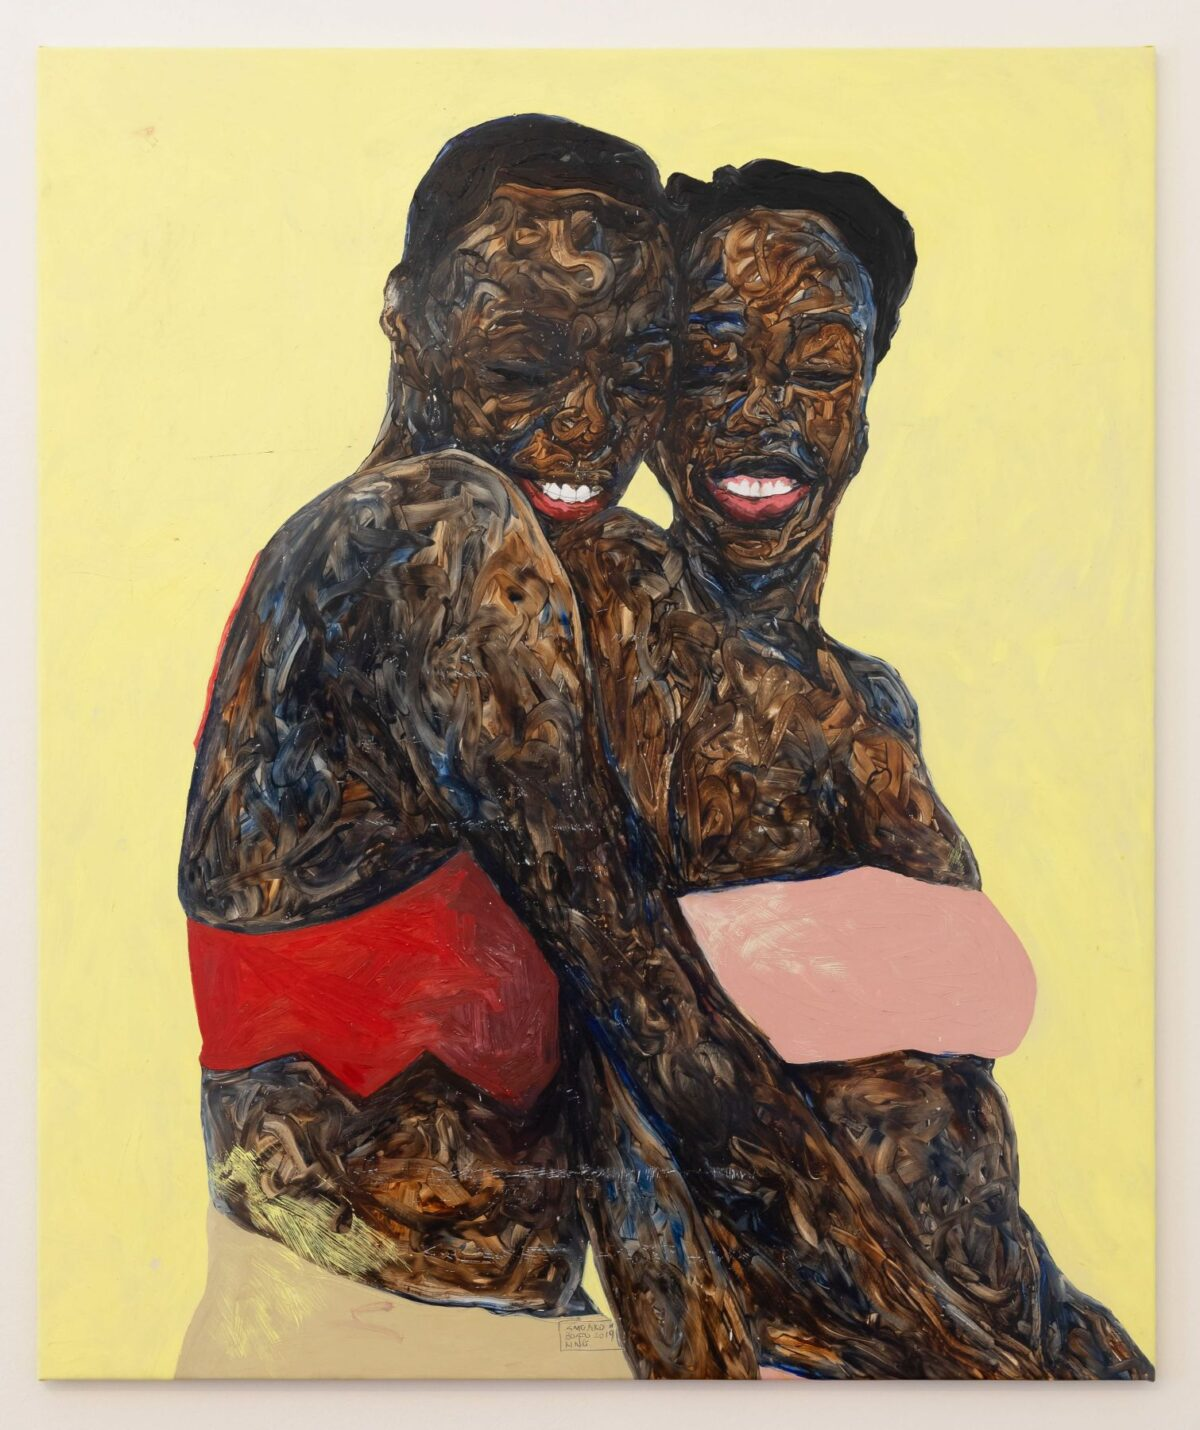 This Week in African Art and Culture – (March 28 – April 3, 2021) Amoako Boafo and Otis Quaicoe show in Accra, Burna Boy is nominated  for a Brit Award